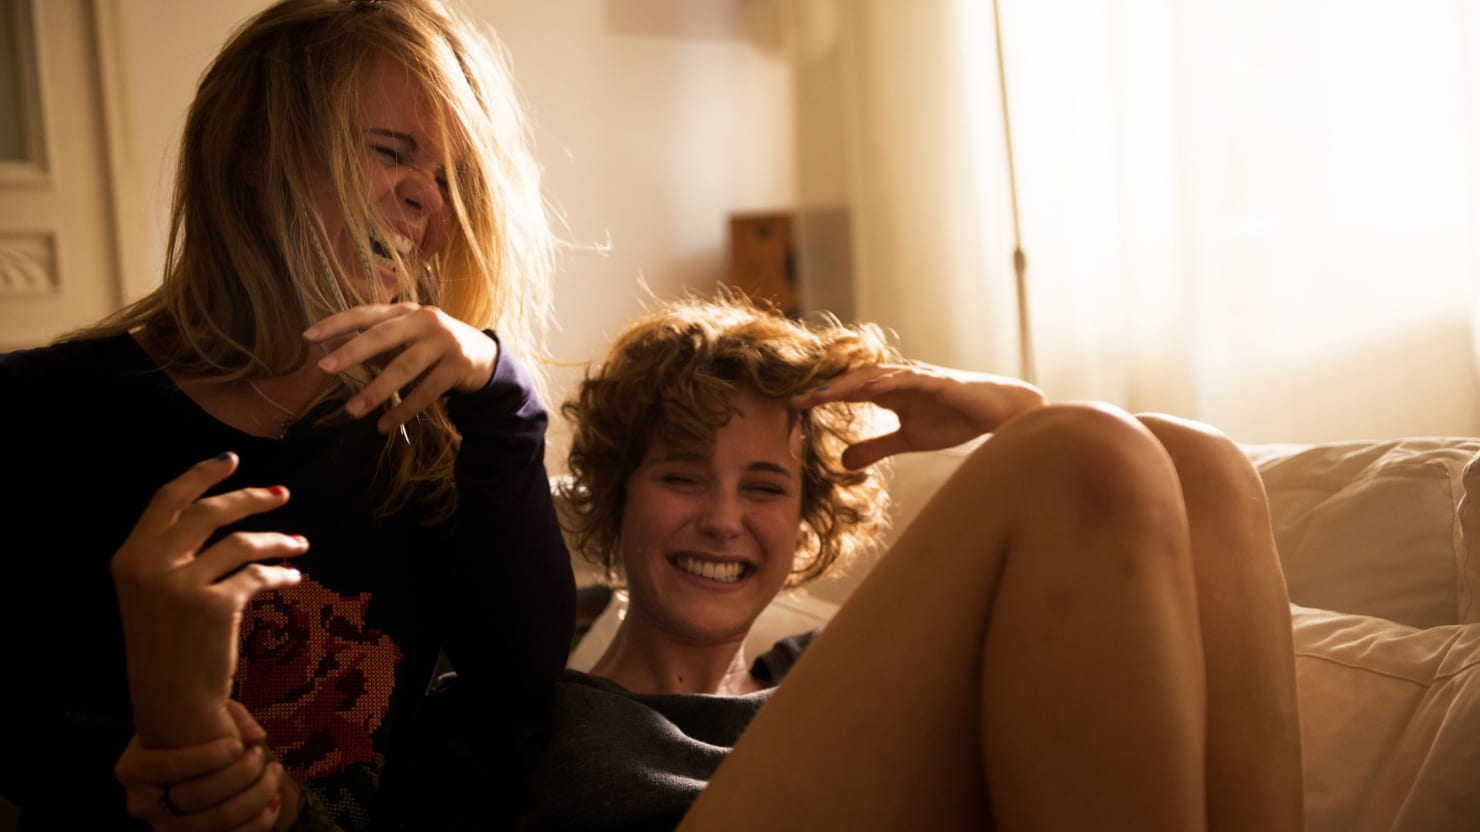 'Wetlands,' About A Bodily Fluid-Obsessed German Teen, Is the Year's Raunchiest Film